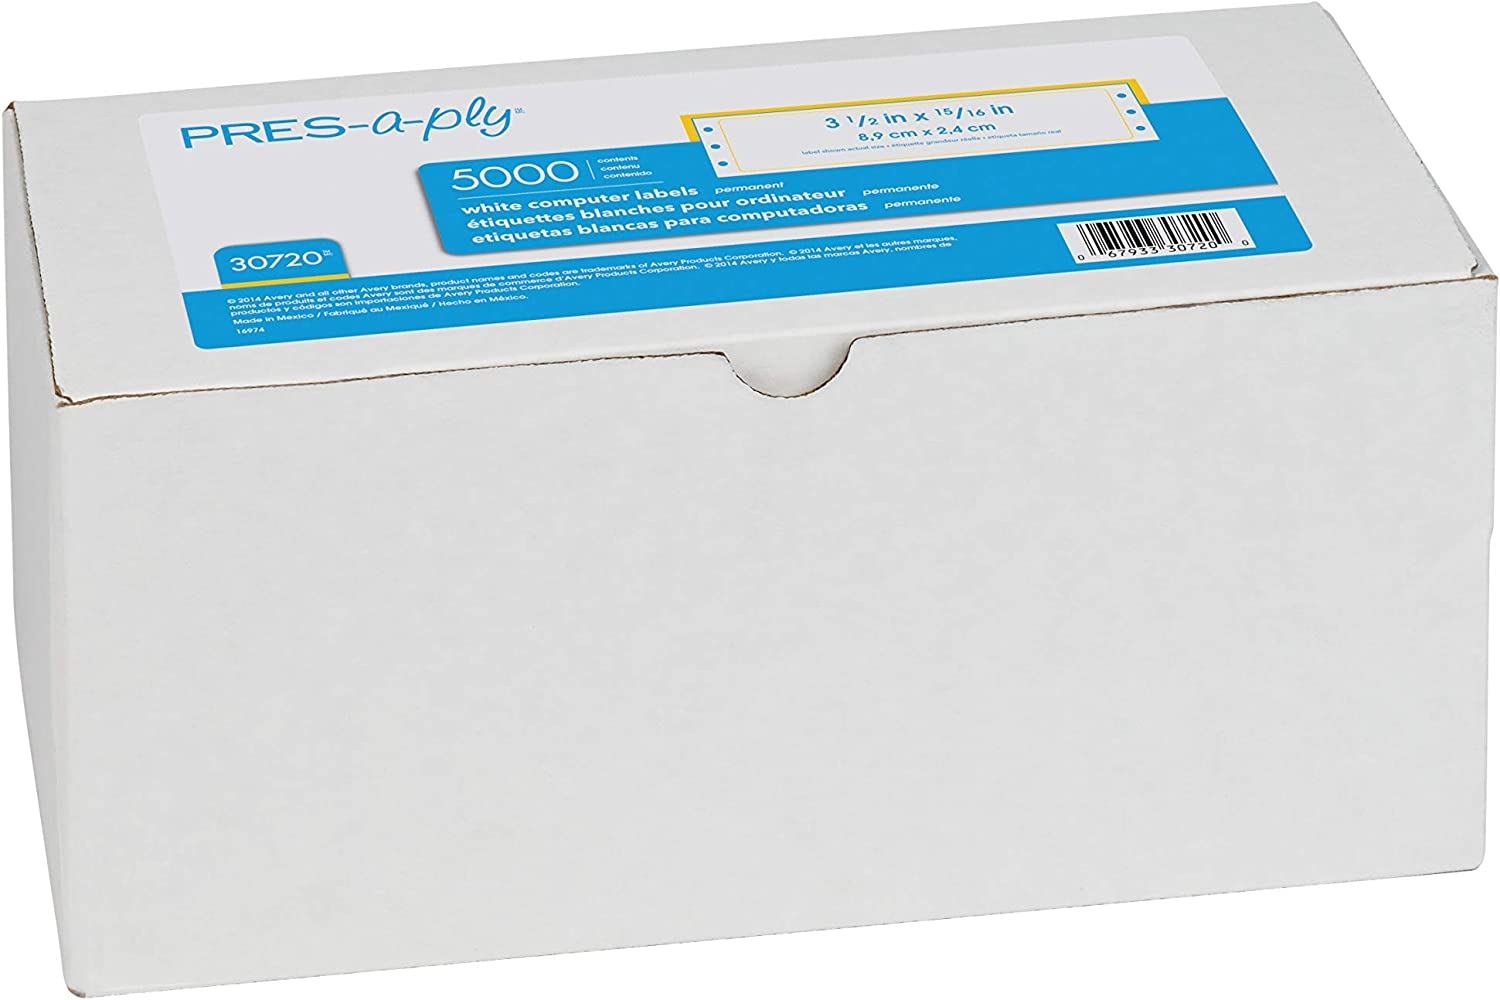 Pres-a-Ply Labels PRFIX White 3.5 X 0.96 Inches Box of 5000 Pin-Fed Computer Labels 30720